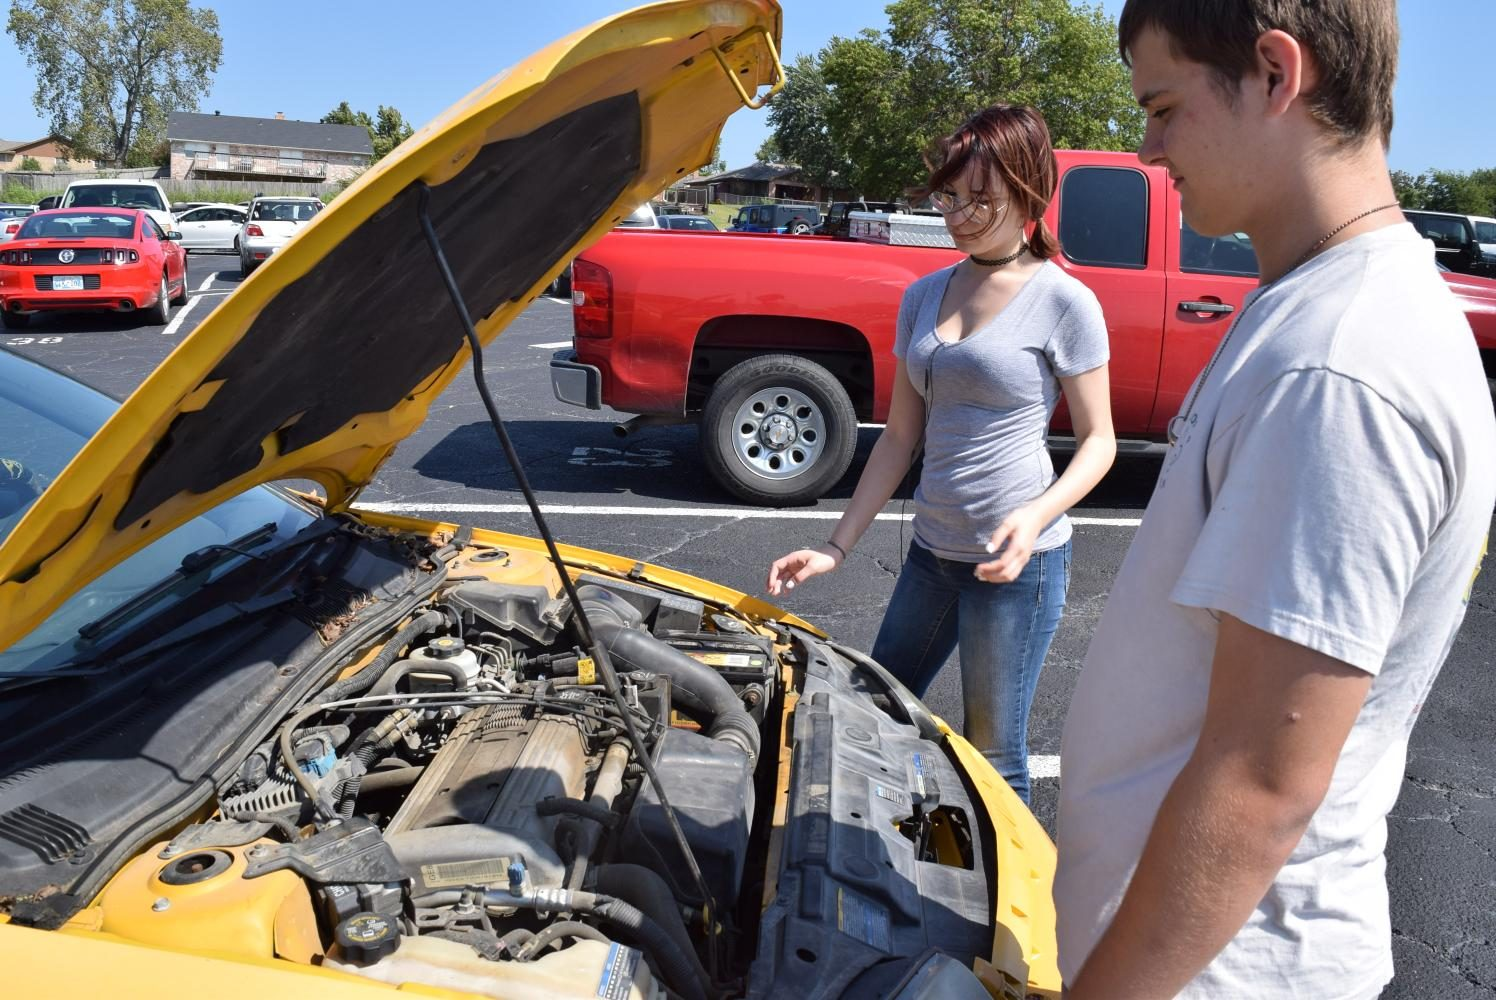 Checking+the+fluids+is+one+simple+vehicle+maintenance+act+that+could+both+save+drivers+money+and+help+eliminate+potential+risk.